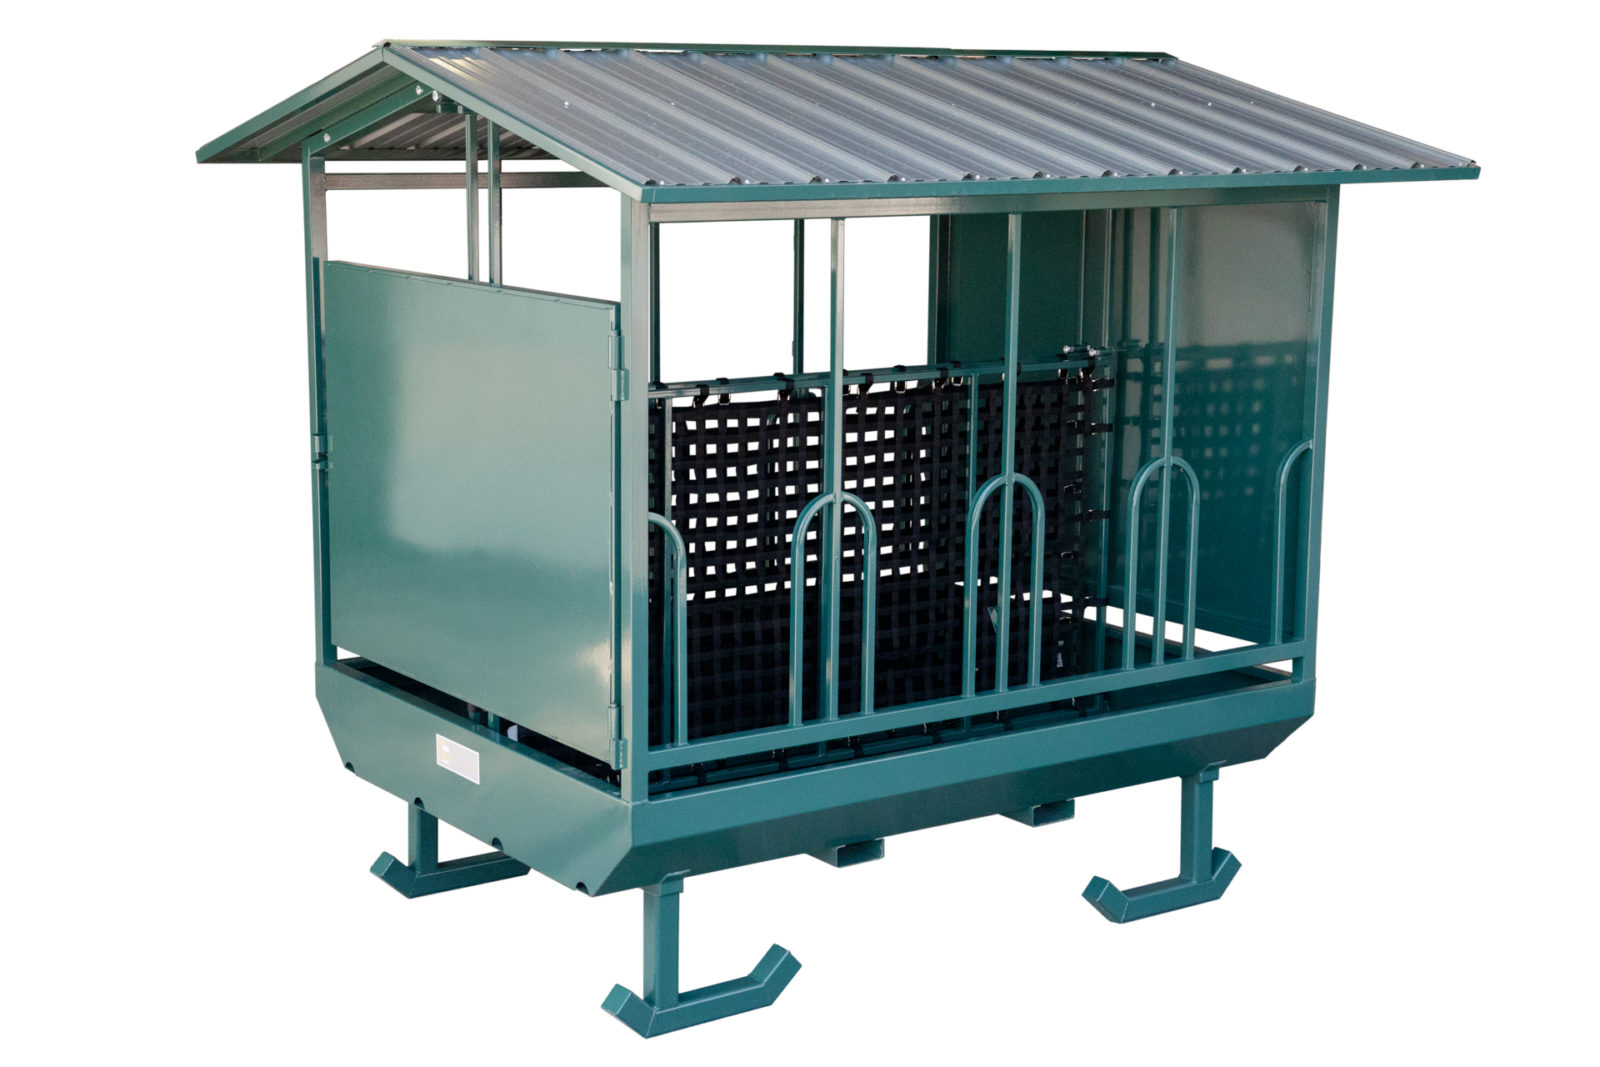 A horse feeder for sale from Farmco